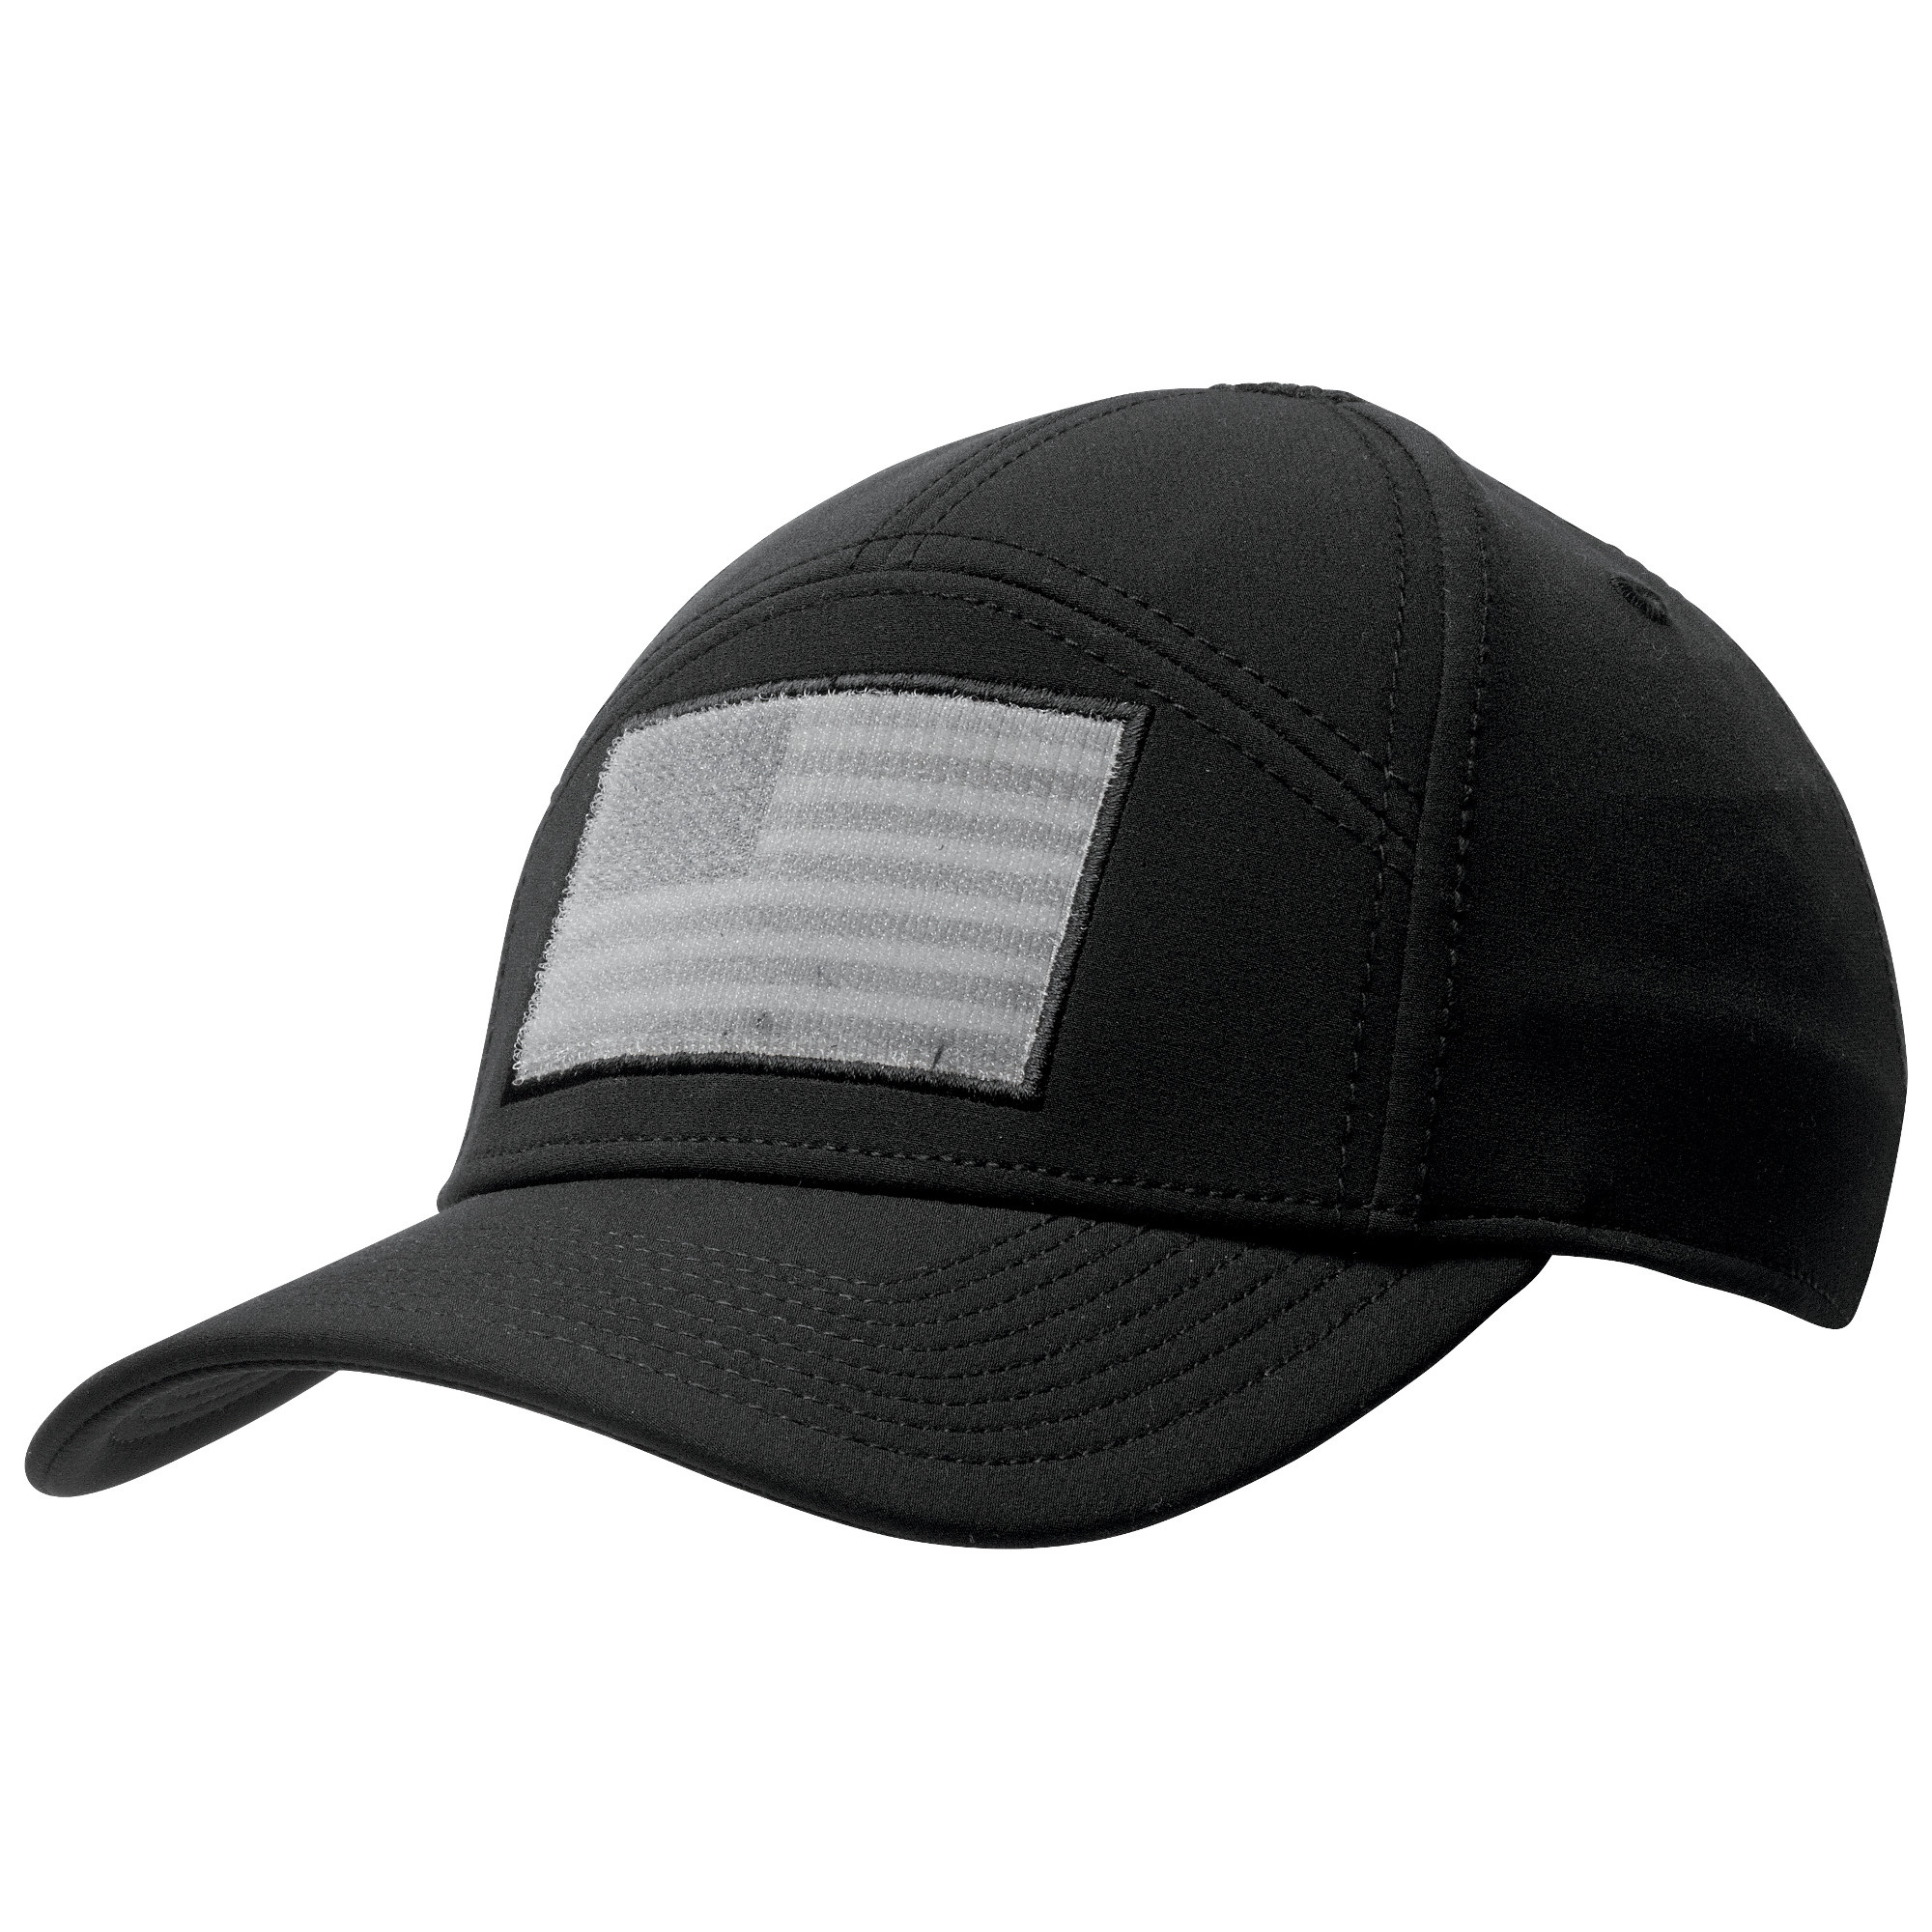 5.11 Tactical Men Operator 2.0 A-Flex Cap